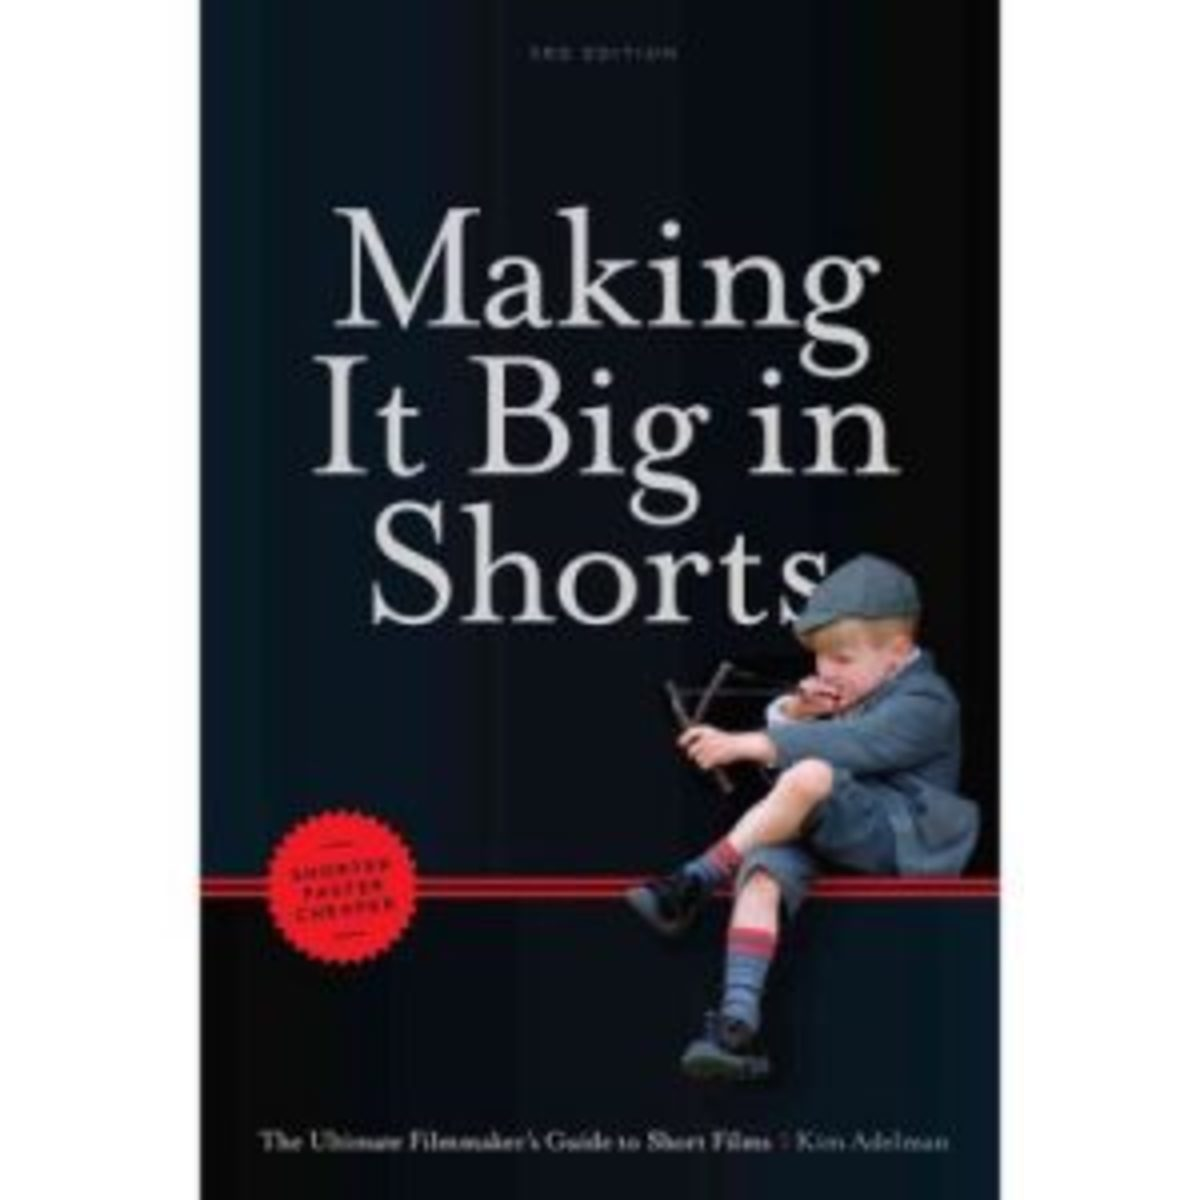 big-short-films